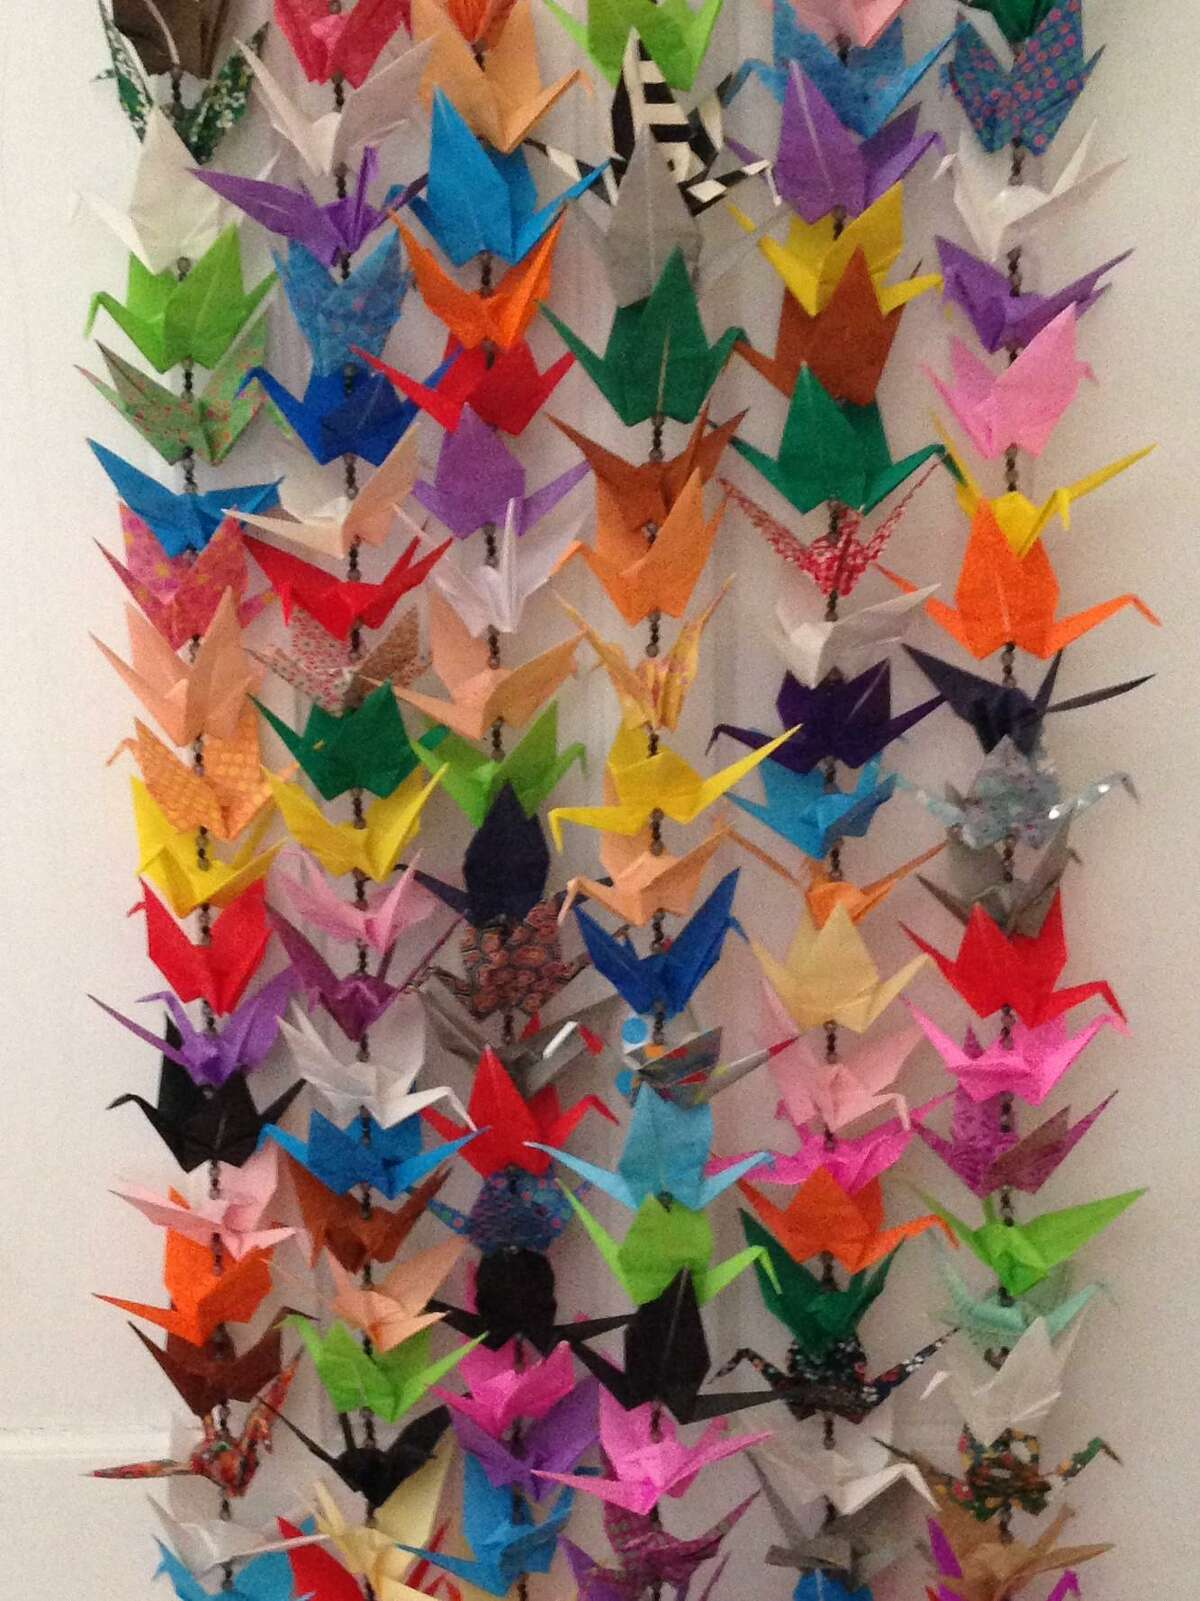 The Torrington Historical Society presents an exhibit of hand-folded paper cranes, starting Oct. 17.